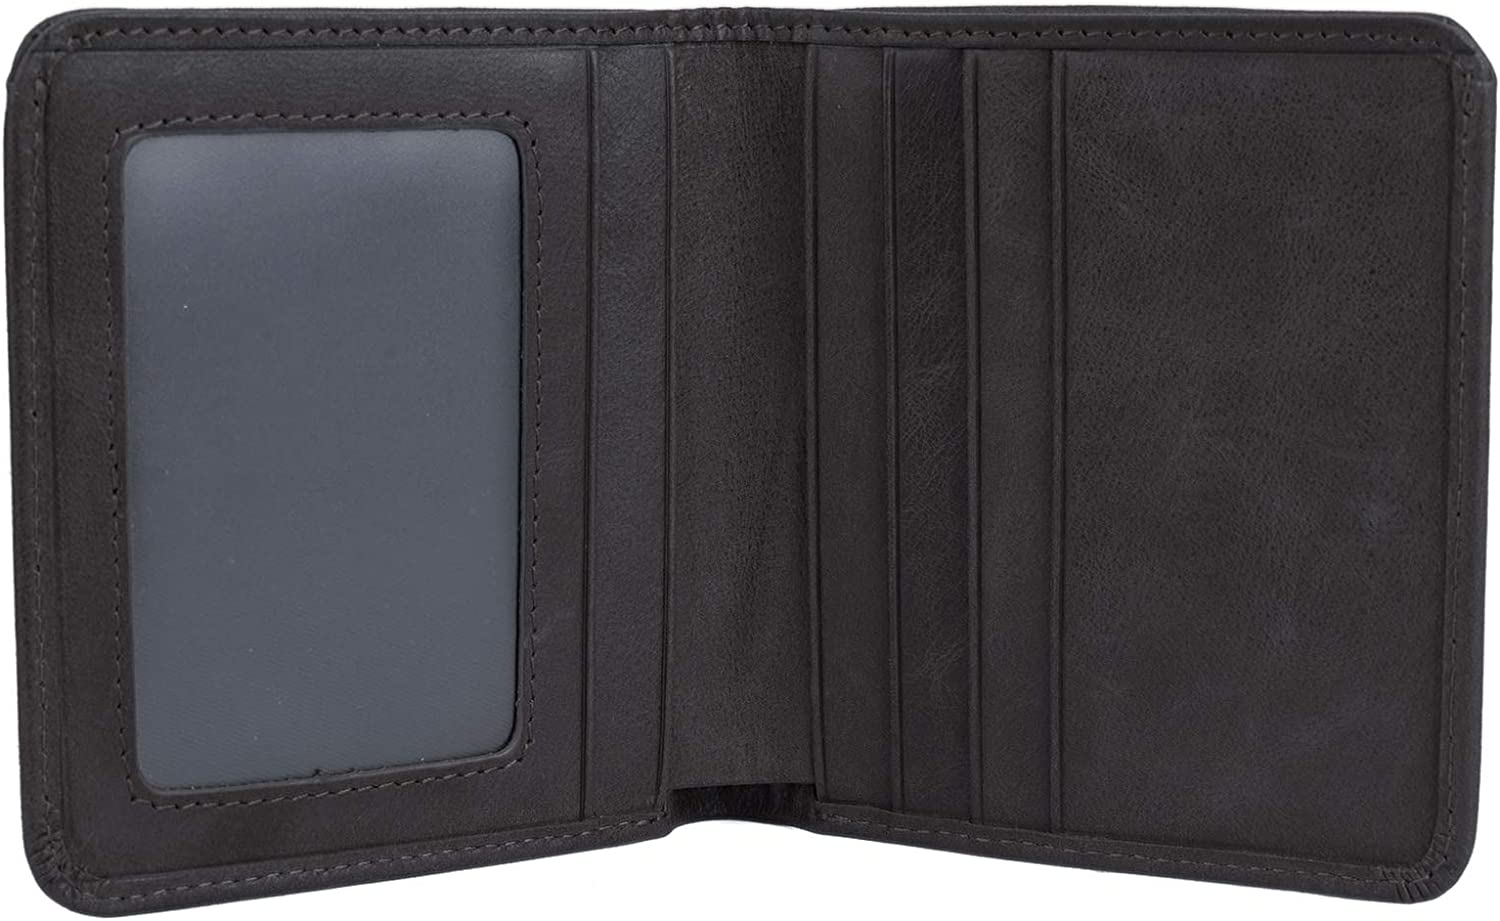 YALUXE RFID Blocking Leather Slim Wallet Credit Card Security Holder Soft Brown